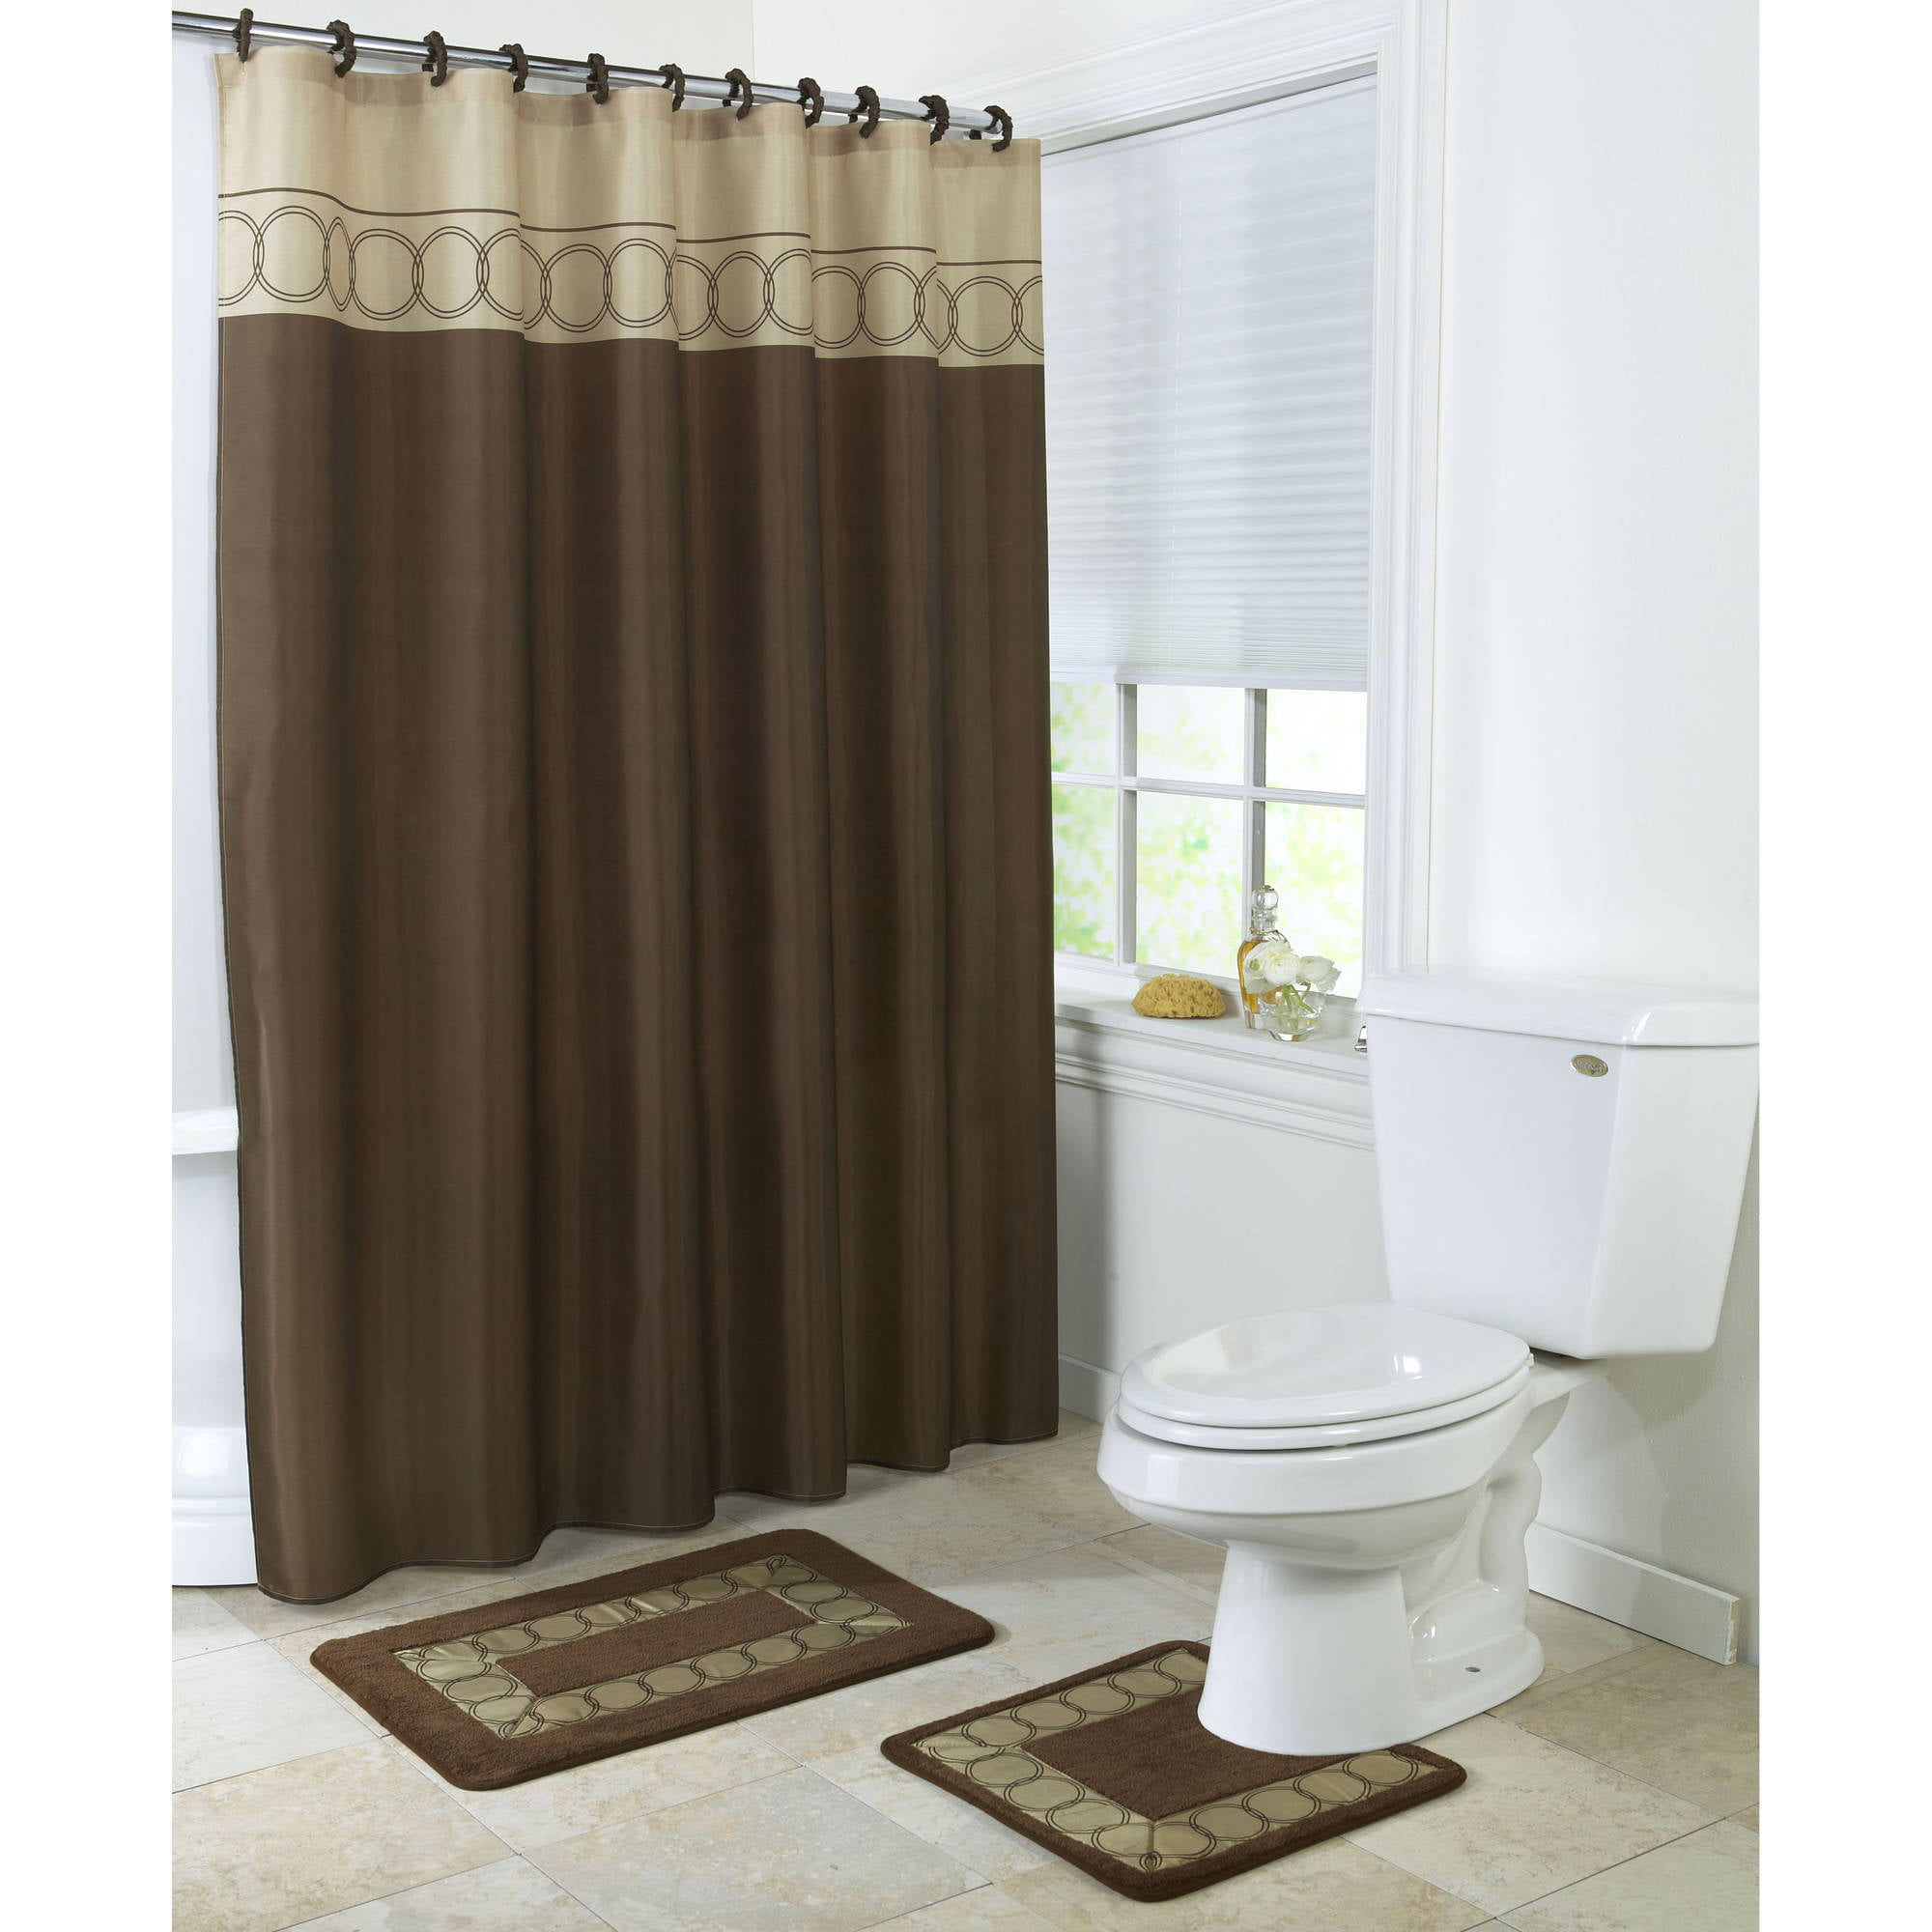 4 Piece Bathroom Rug Set 3 Piece Chocolate Ring Bath Rugs With Fabric Shower Curtain And Matching Mat Rings